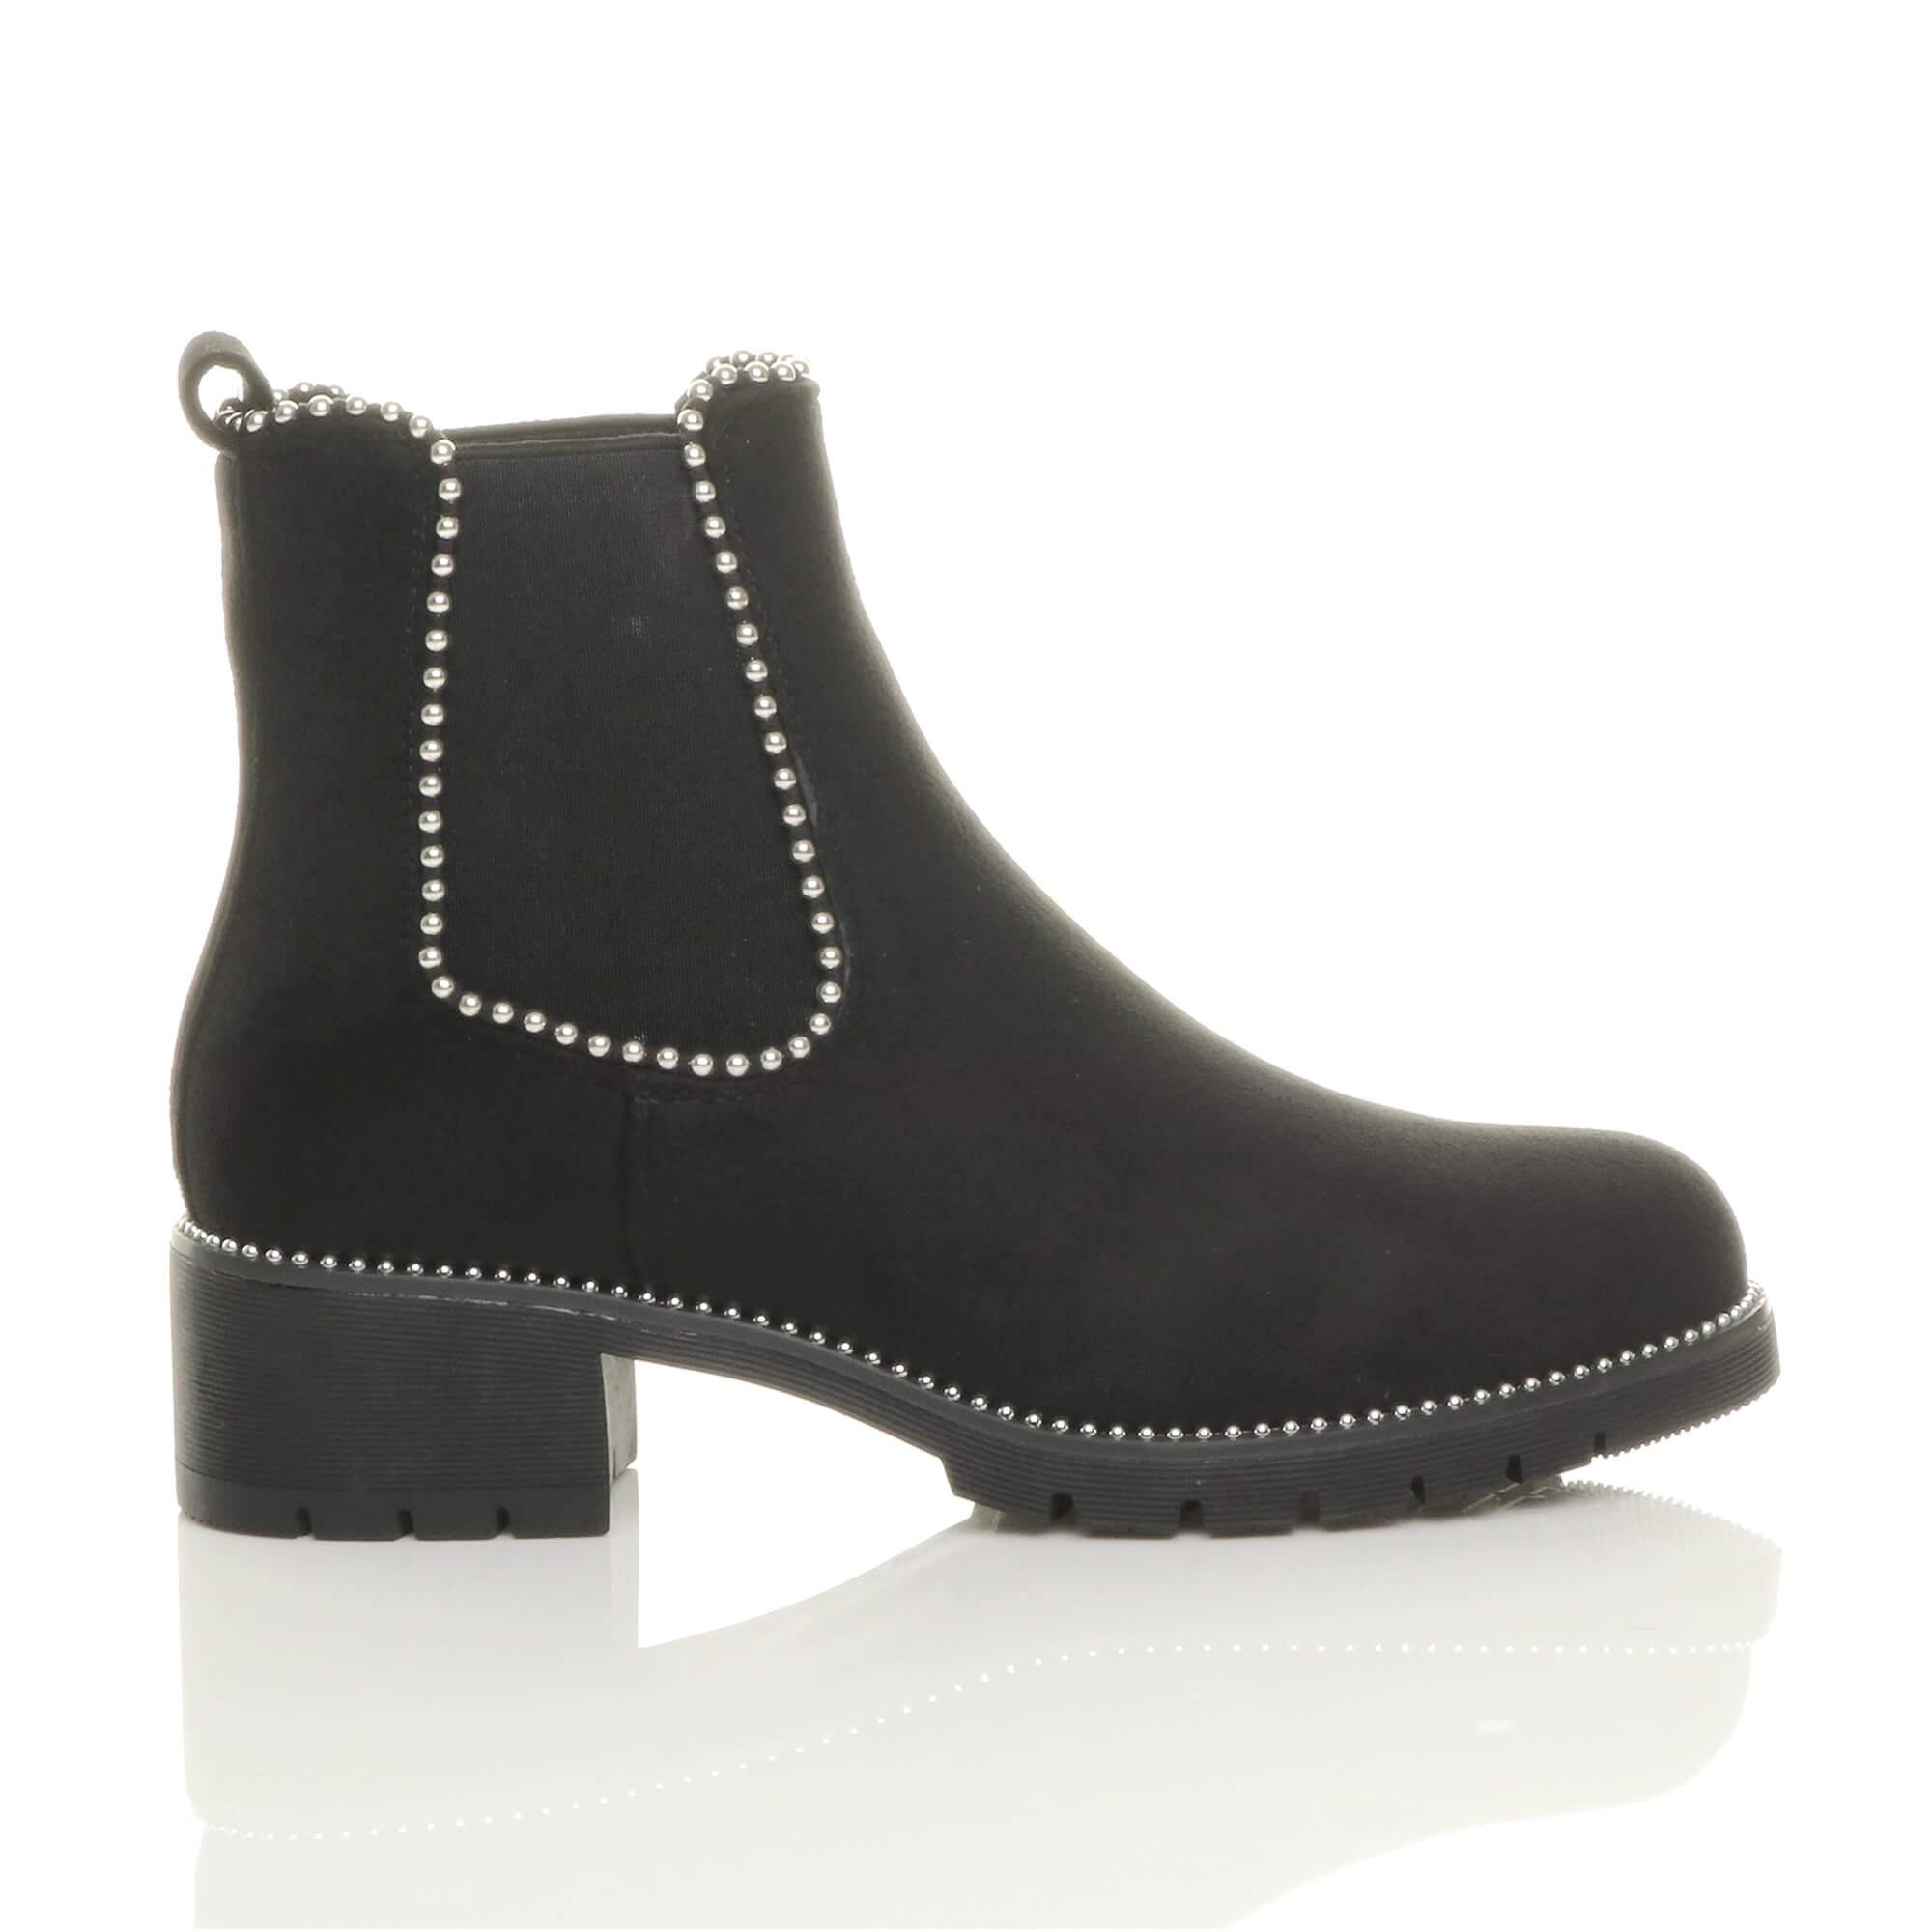 WOMENS-LADIES-LOW-BLOCK-HEEL-STUDDED-ELASTIC-CHELSEA-RIDING-ANKLE-BOOTS-SIZE